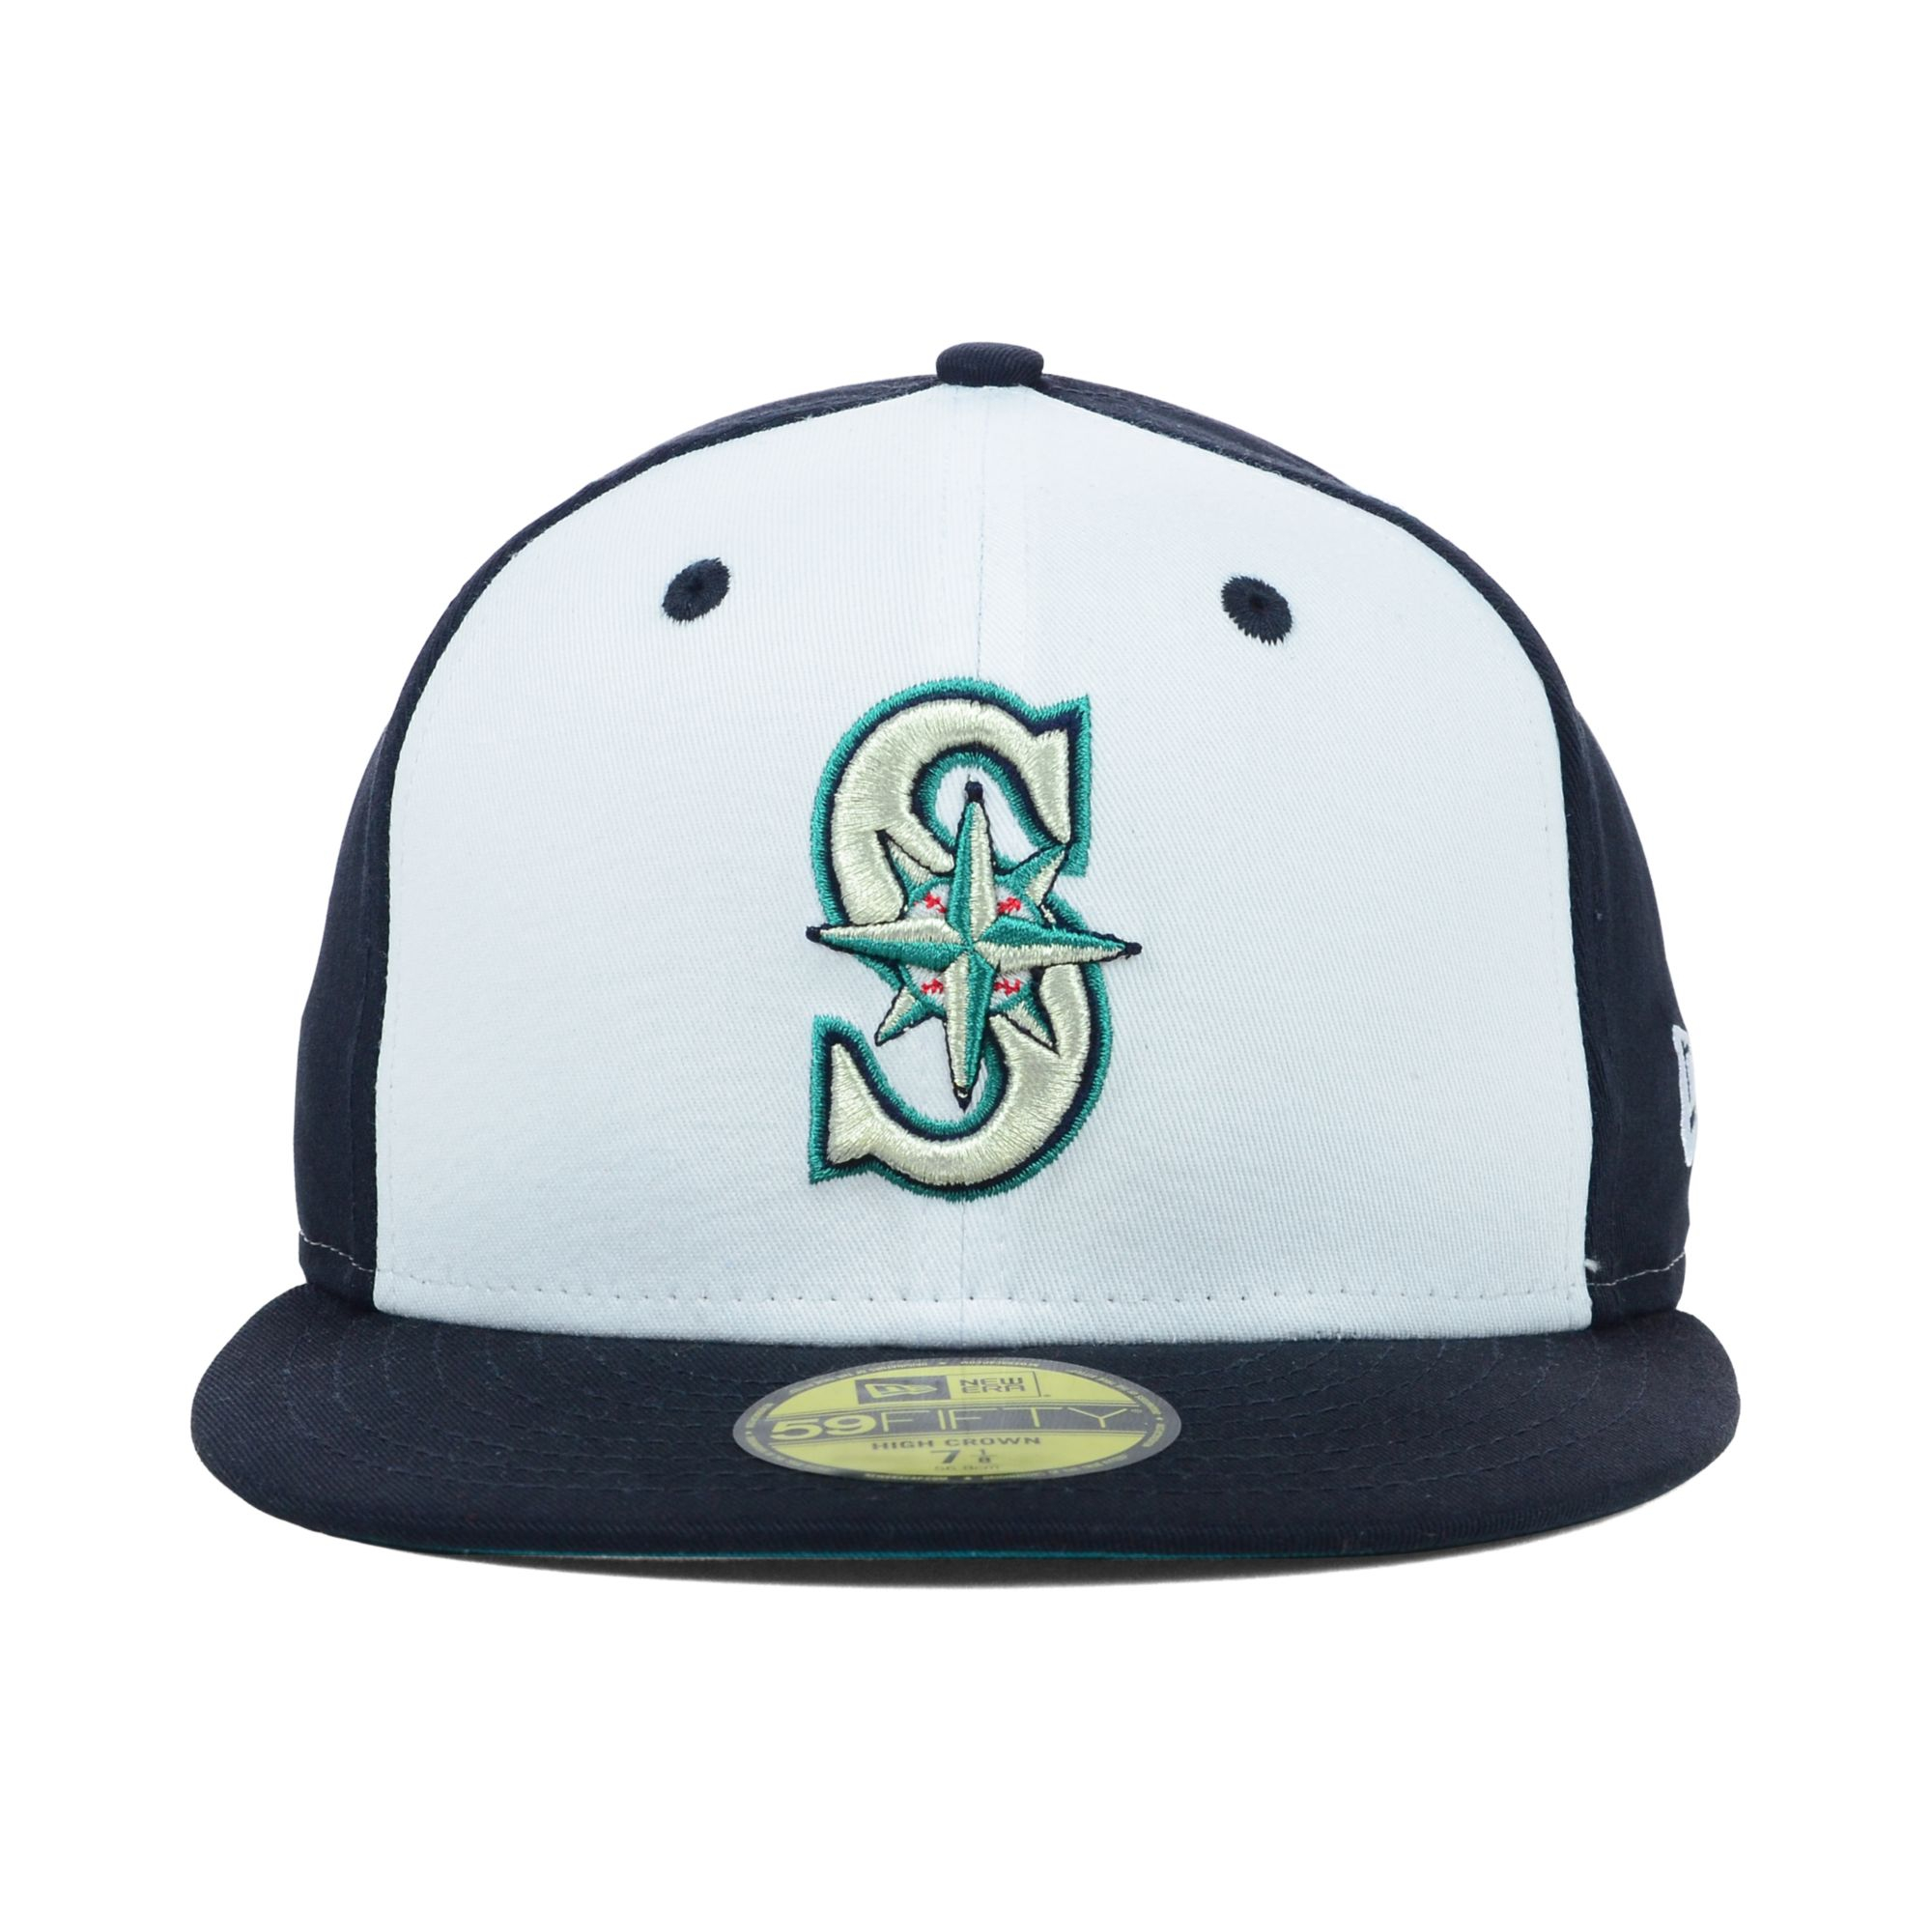 finest selection 825af a655e ... canada lyst ktz seattle mariners mlb high heat 59fifty cap in blue for  men 36b63 8ce0c